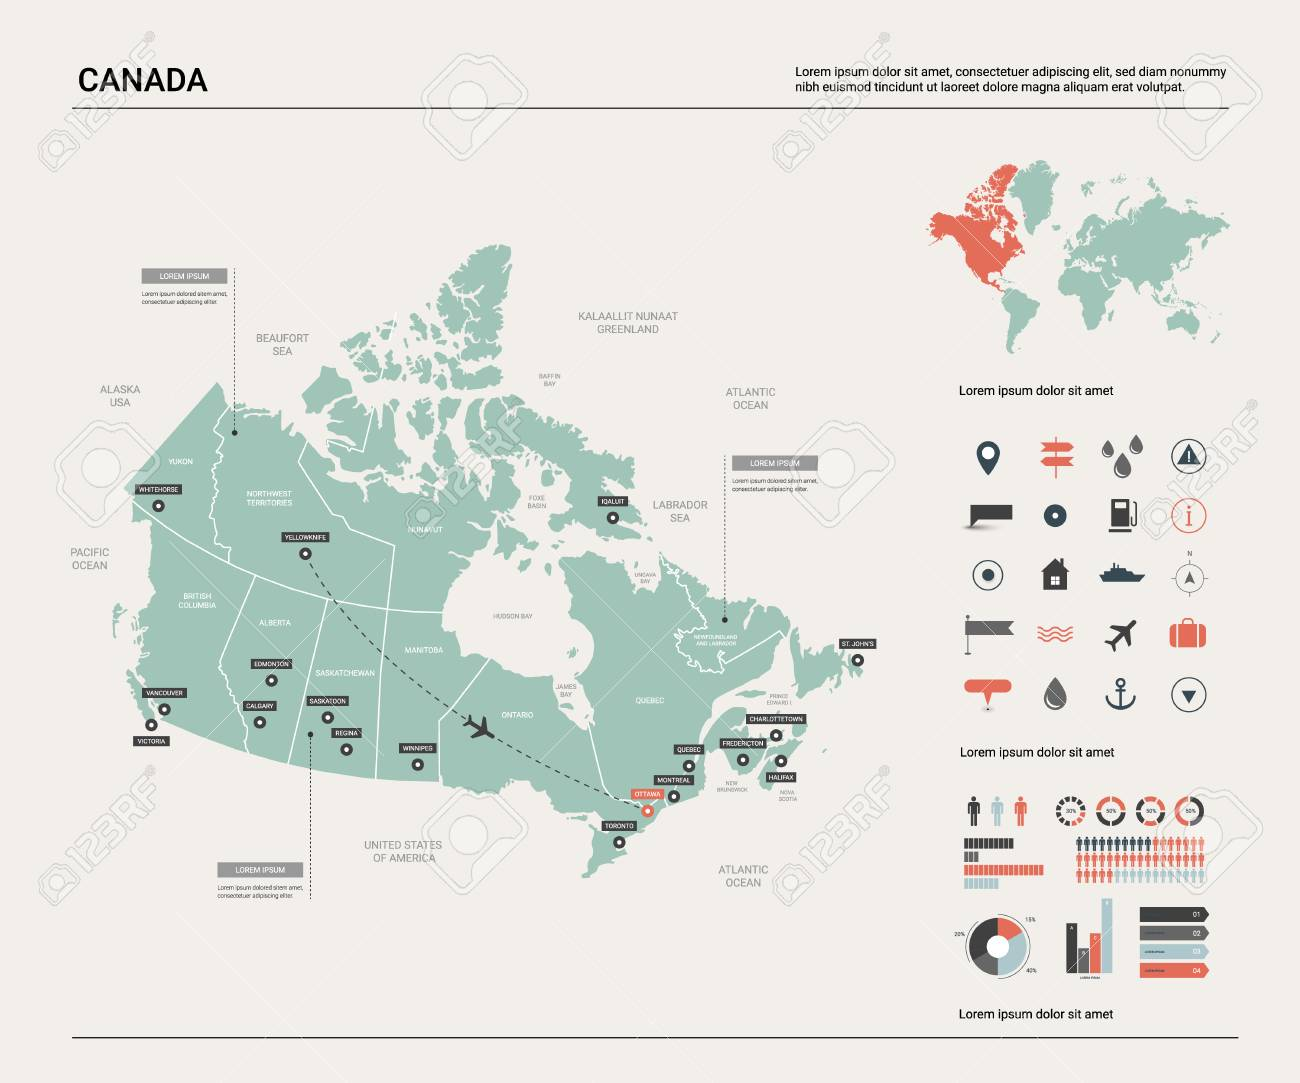 Vector map of Canada. High detailed country map with division,.. on map of canada first nations tribes, map of canada with cities, map of canada abbreviations, canada map with states and capitals, map of canada provinces, u.s. map capitals, map of downtown montreal canada hotels, map mexico capitals, map of canada nhl teams, french canada map capitals, map australia capitals, map of canada geographical features, map of quebec and ontario canada, map of us and canada, map of canada landscape, map of canada seas, map of canada new york, map of countries near the netherlands, map of canada languages, map of canada history,